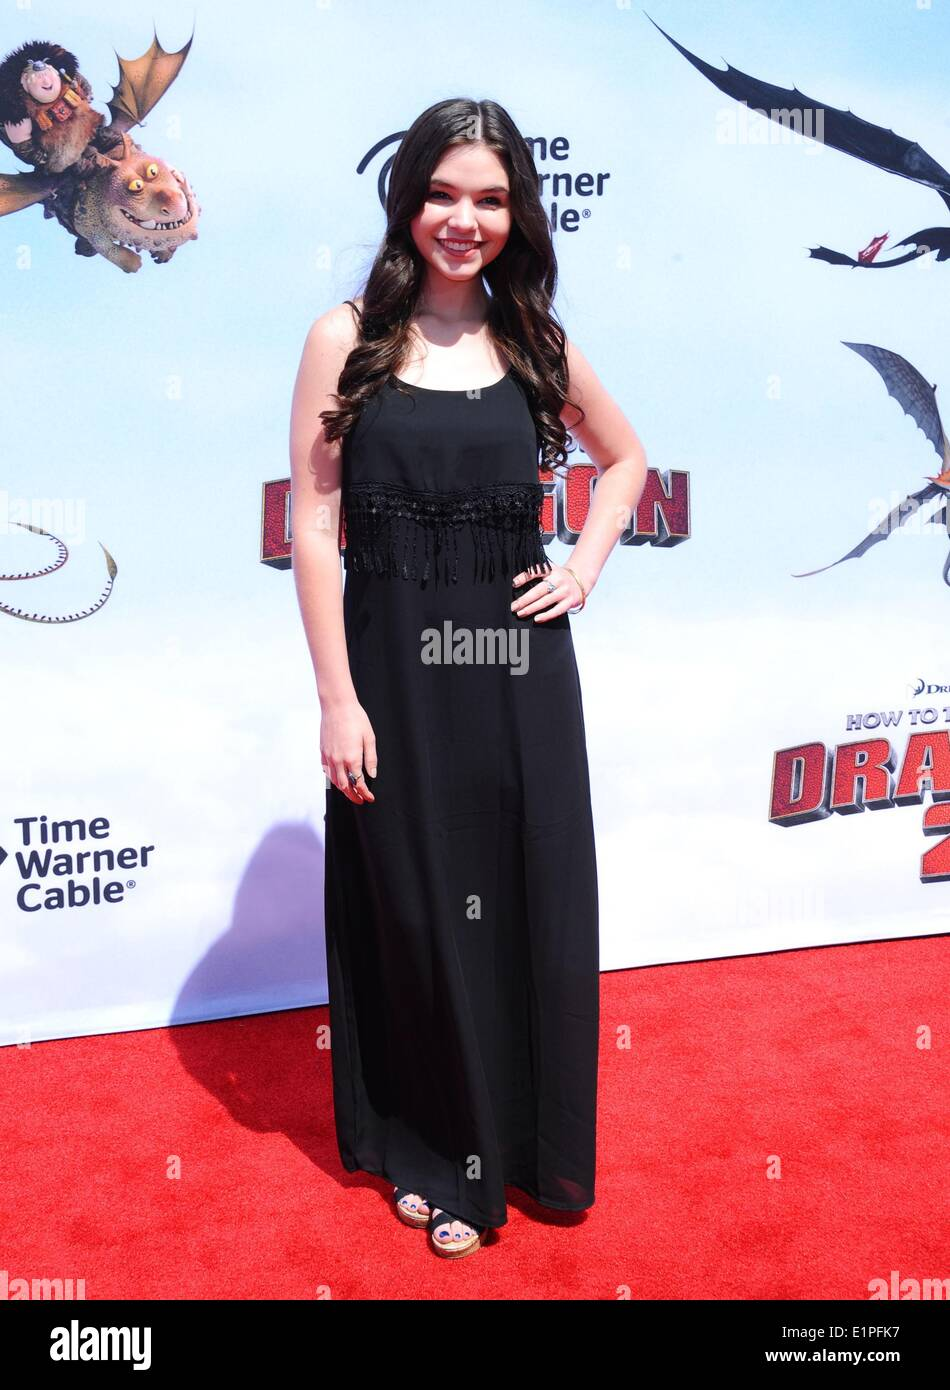 Los Angeles, CA, USA. 8th June, 2014. Madison McLaughlin at arrivals for HOW TO TRAIN YOUR DRAGON 2 Premiere, The Regency Village Theatre, Los Angeles, CA June 8, 2014. Credit:  Dee Cercone/Everett Collection/Alamy Live News - Stock Image